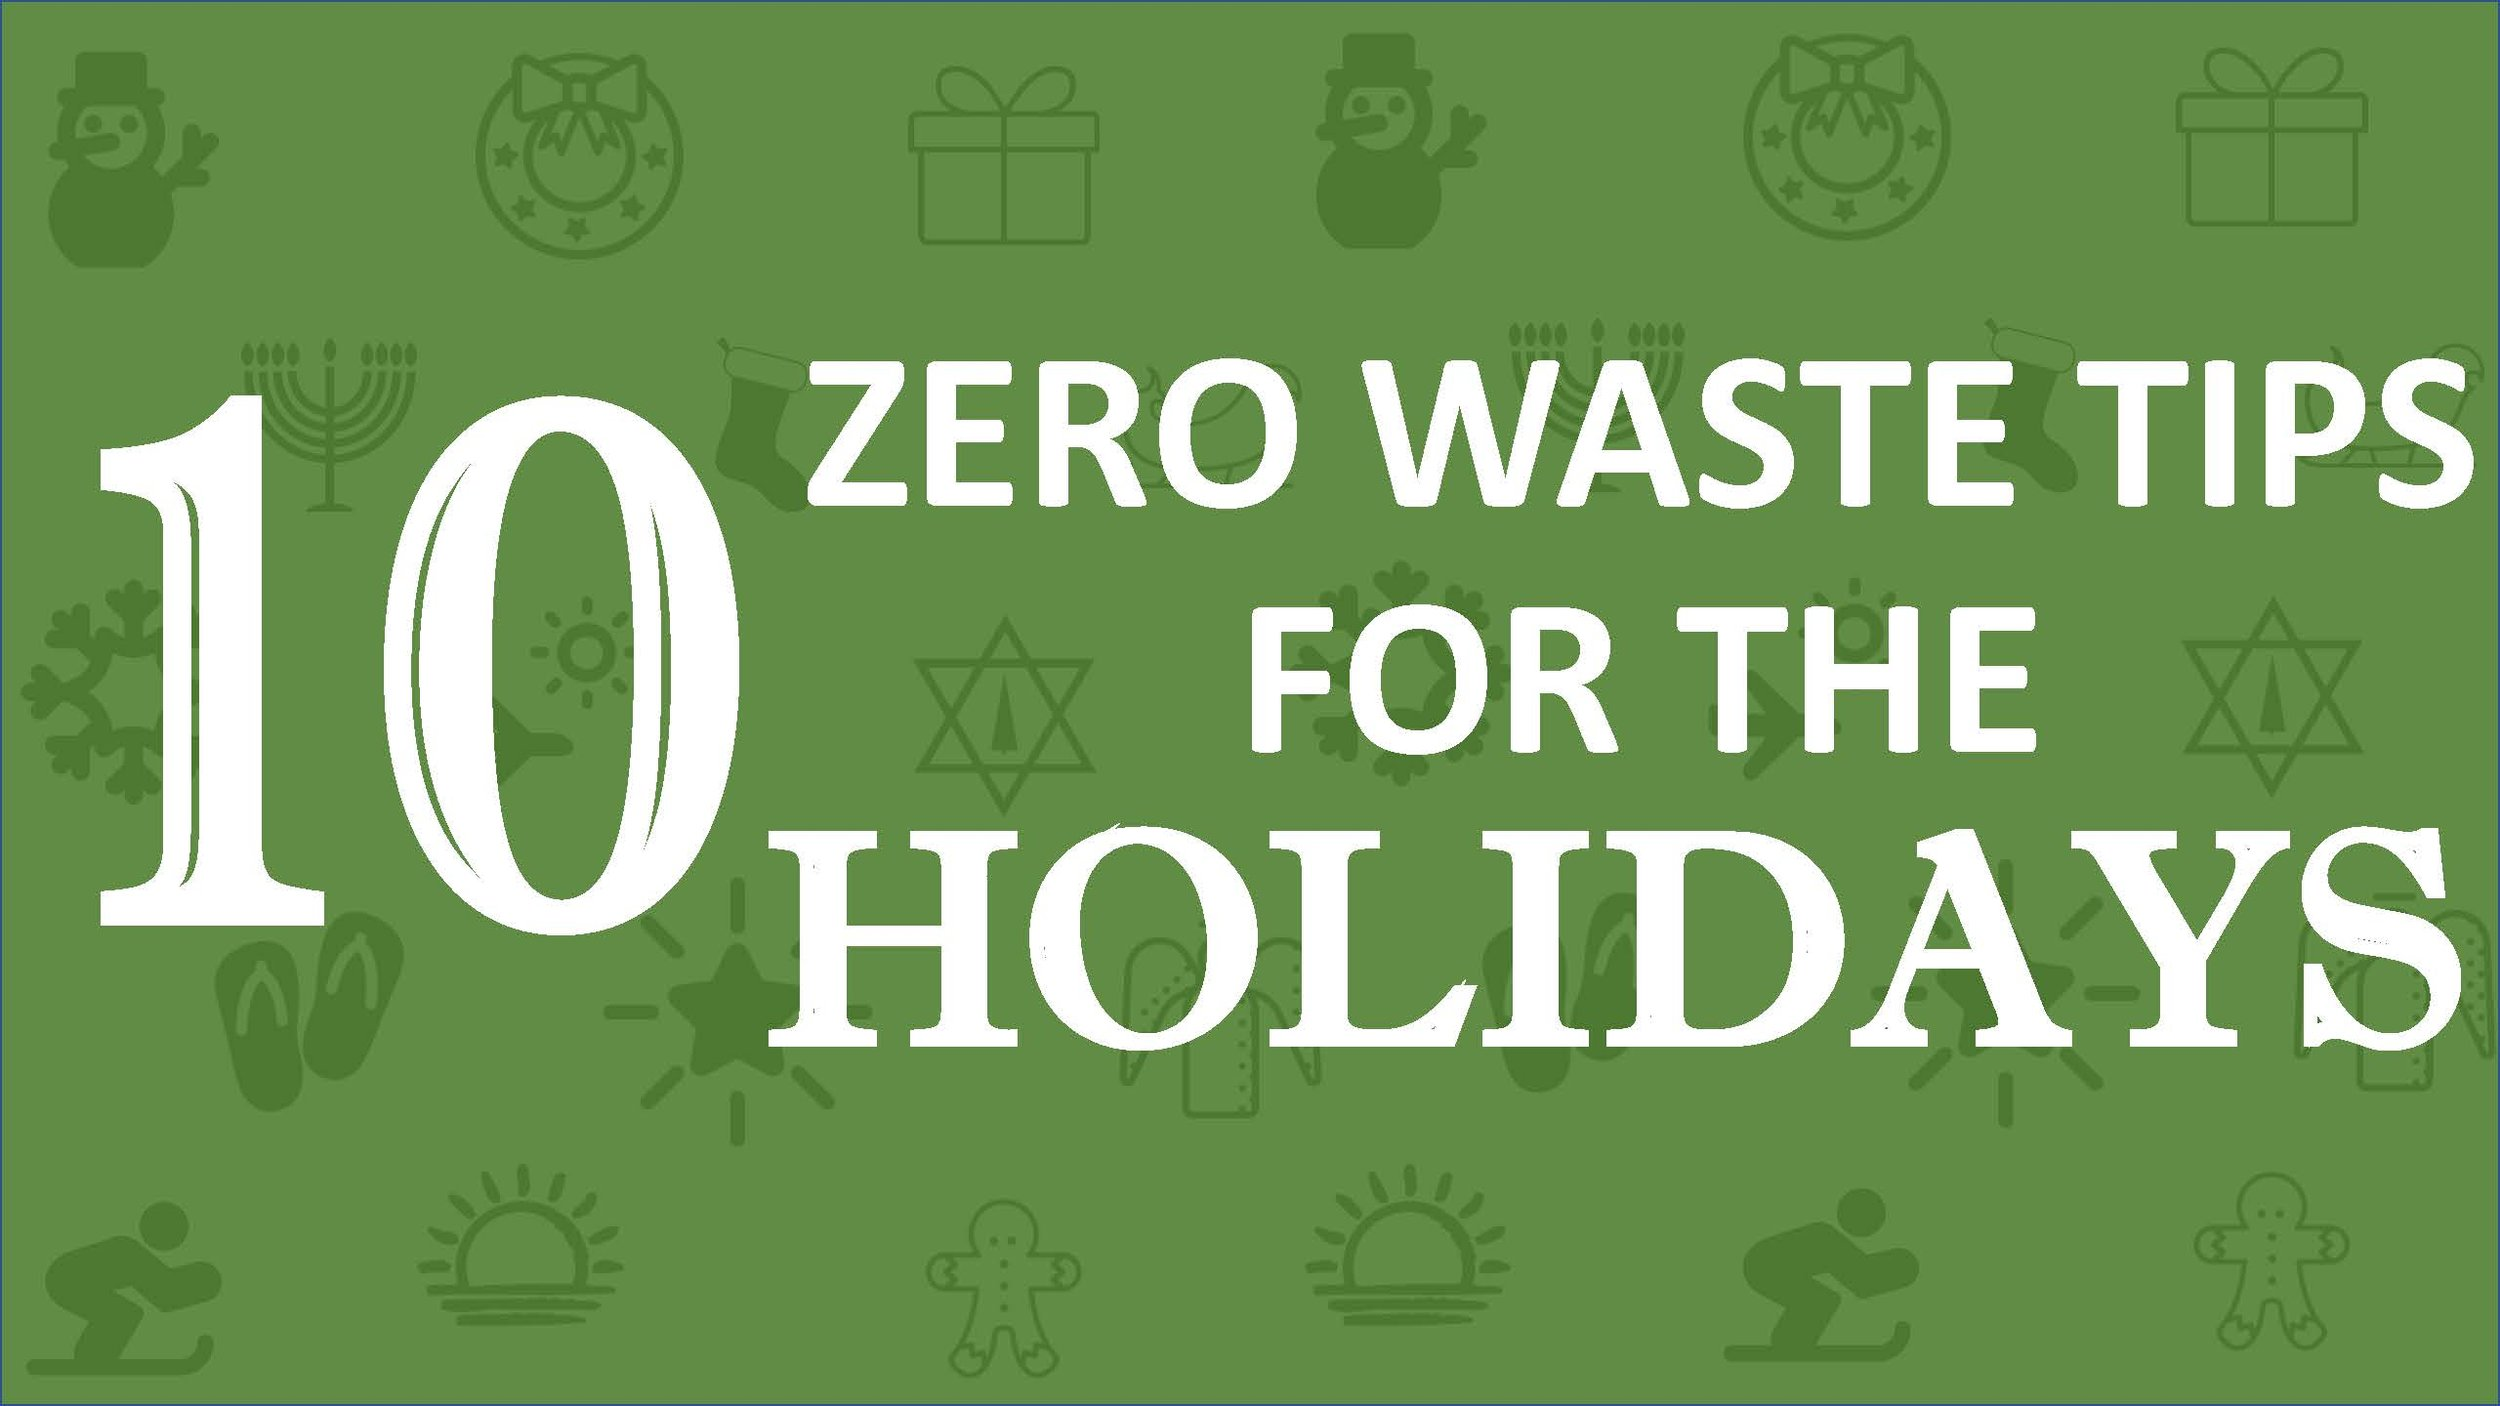 10 zero waste tips for the holidays_Page_2.jpg